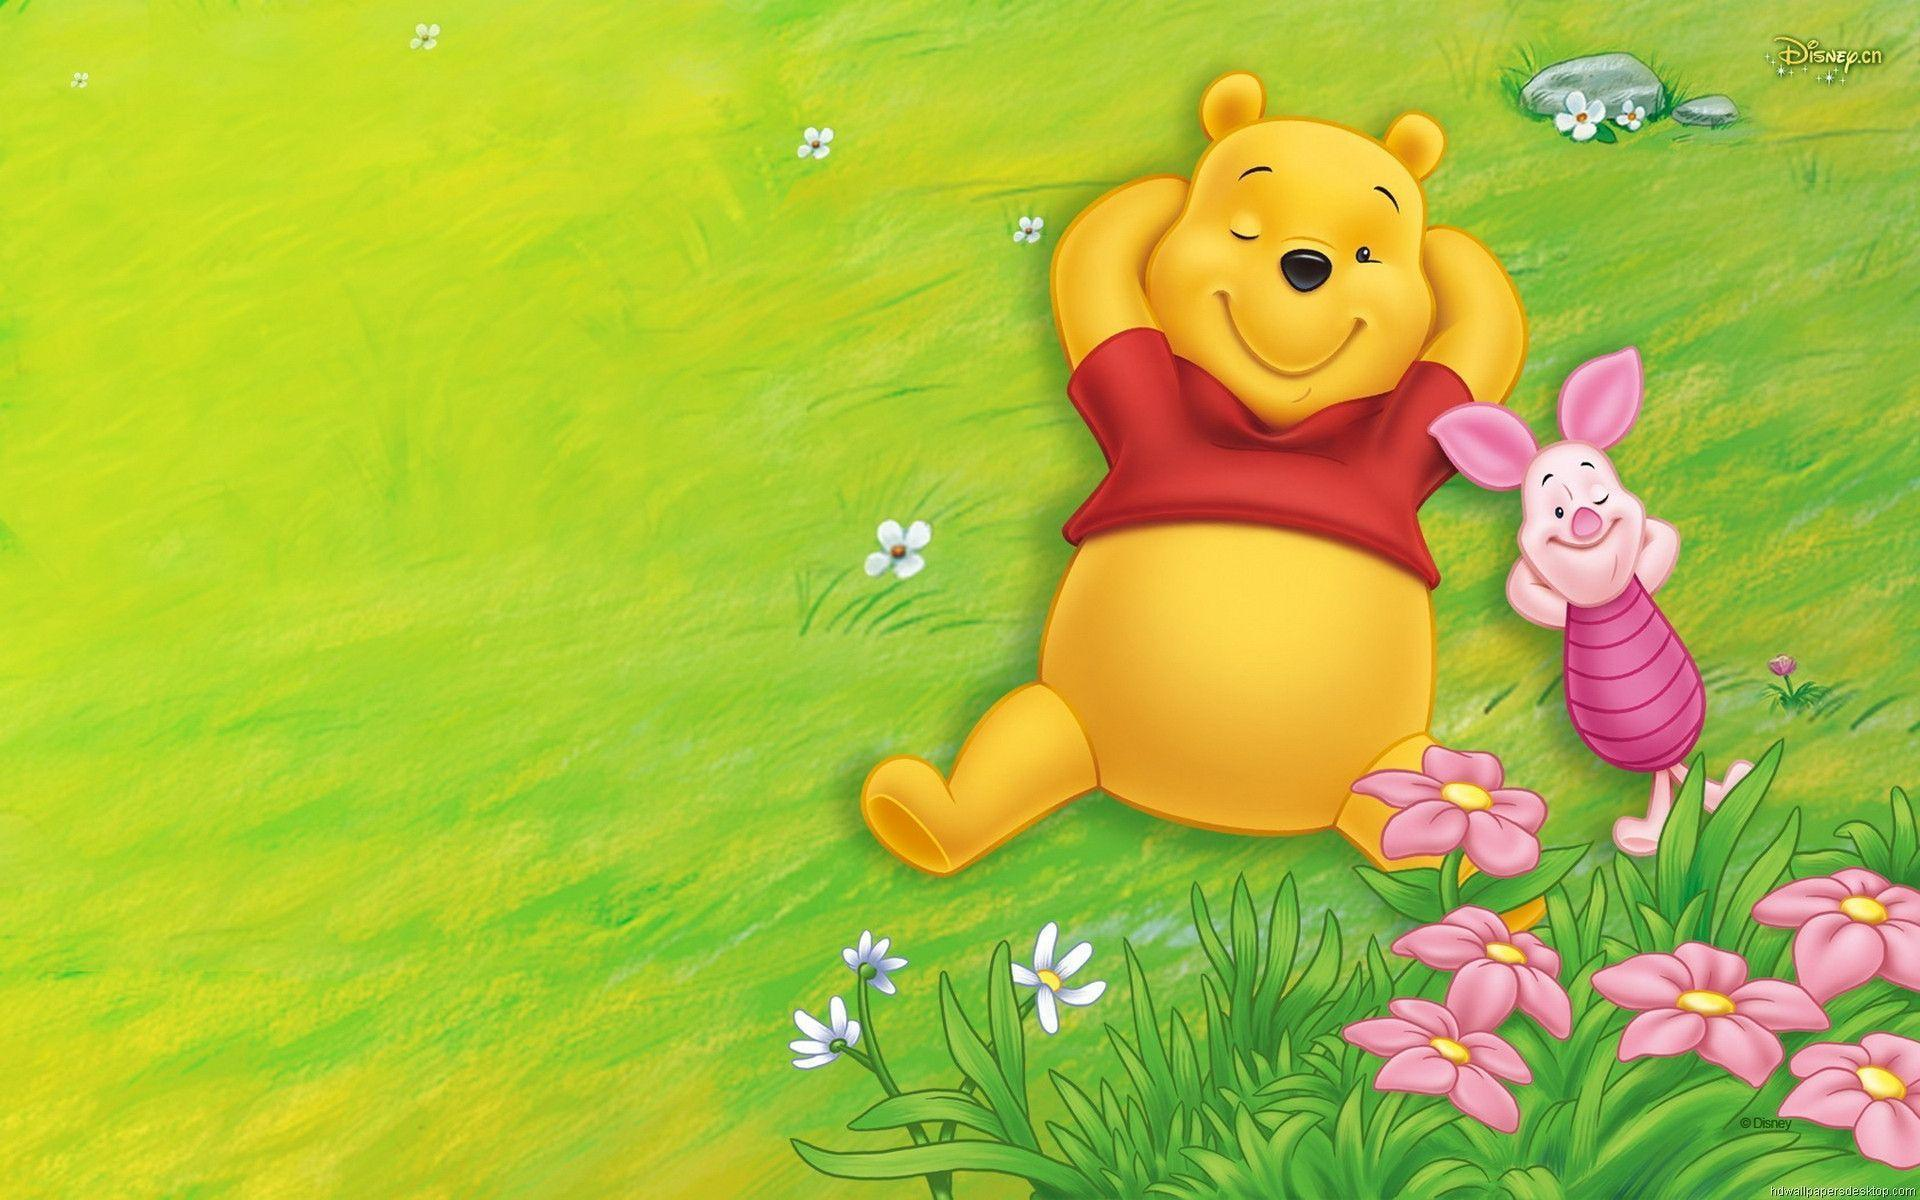 Great Wallpaper Halloween Winnie The Pooh - USjpcBa  Perfect Image Reference_232278.jpg